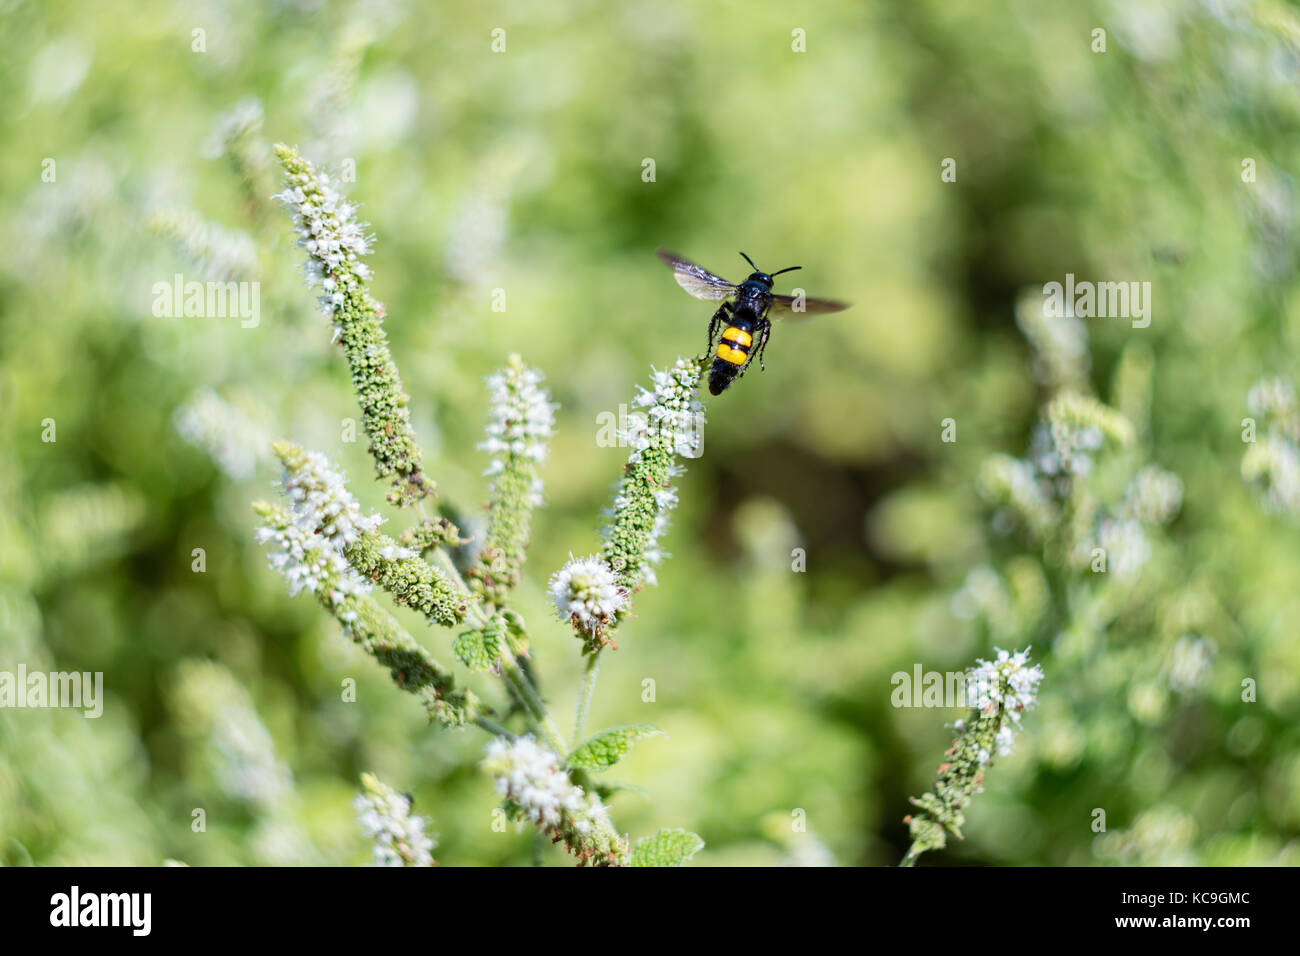 Flying insect stockfotos flying insect bilder alamy for Blumen fliegen